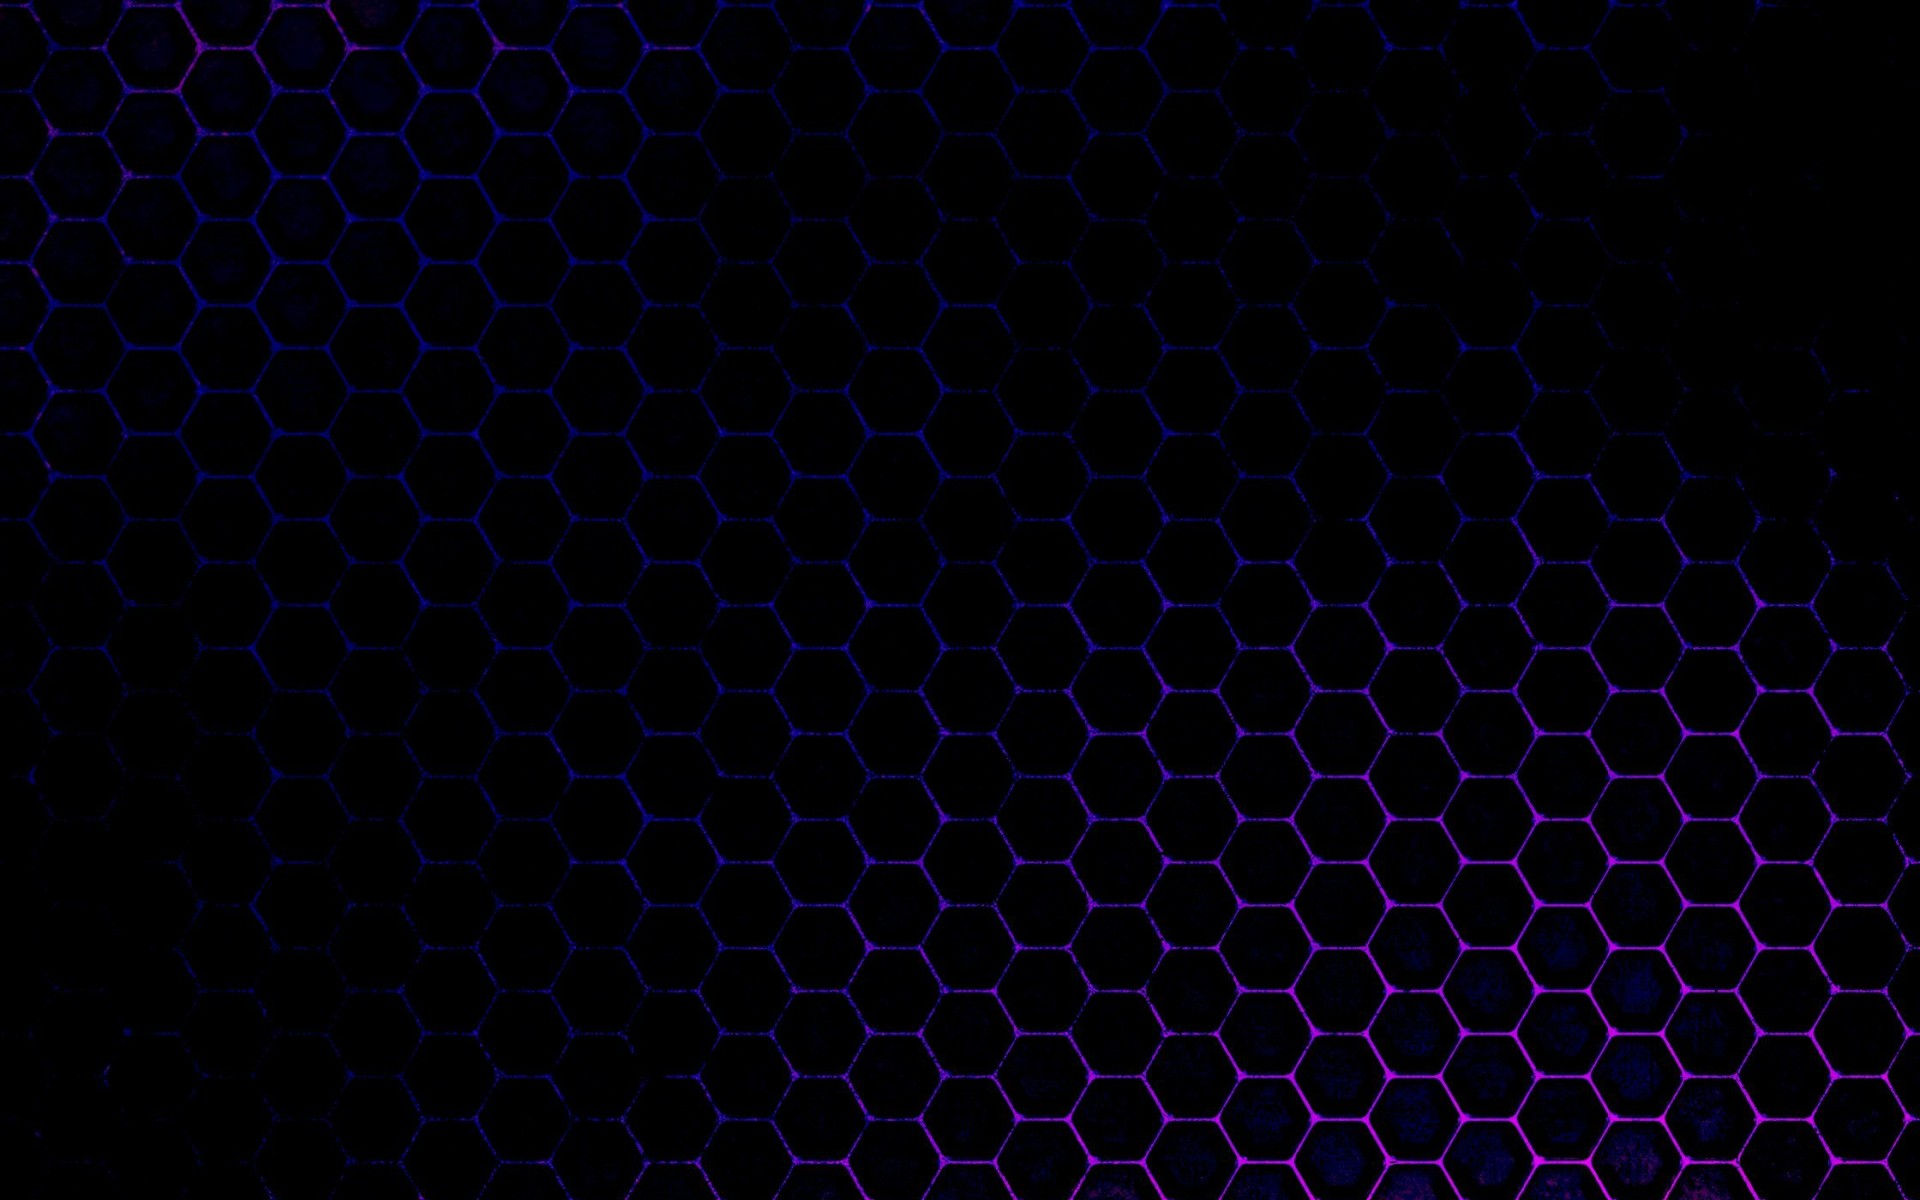 Abstract Purple Circles Pattern Wallpaper 1920x1200 768x480